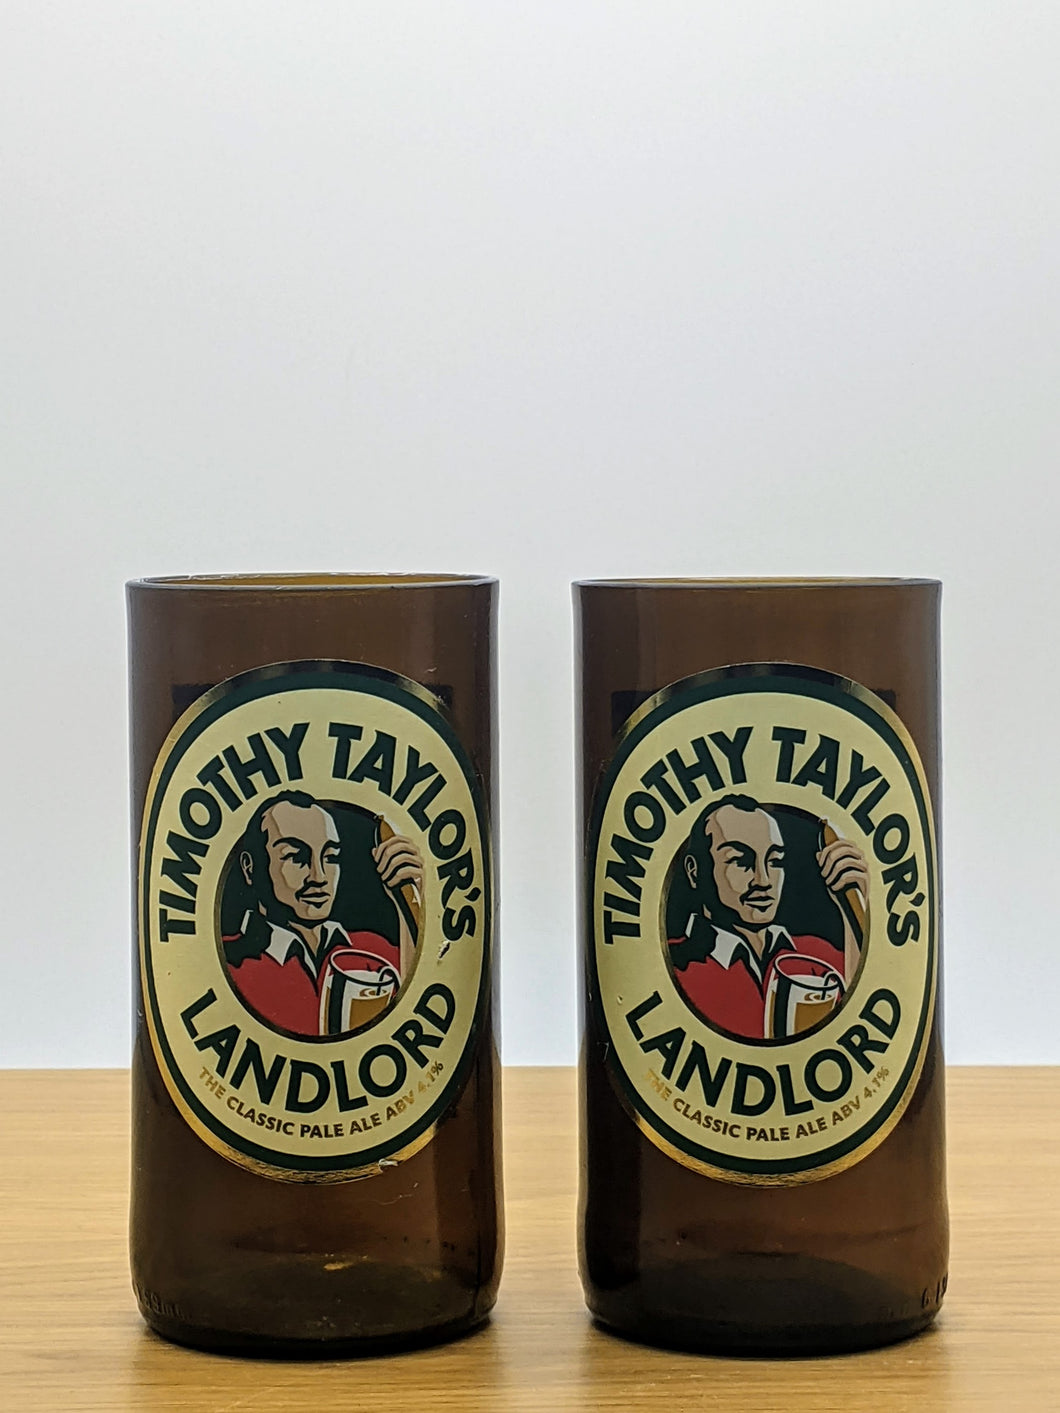 Timothy Taylor's Landlord beer bottle tumblers